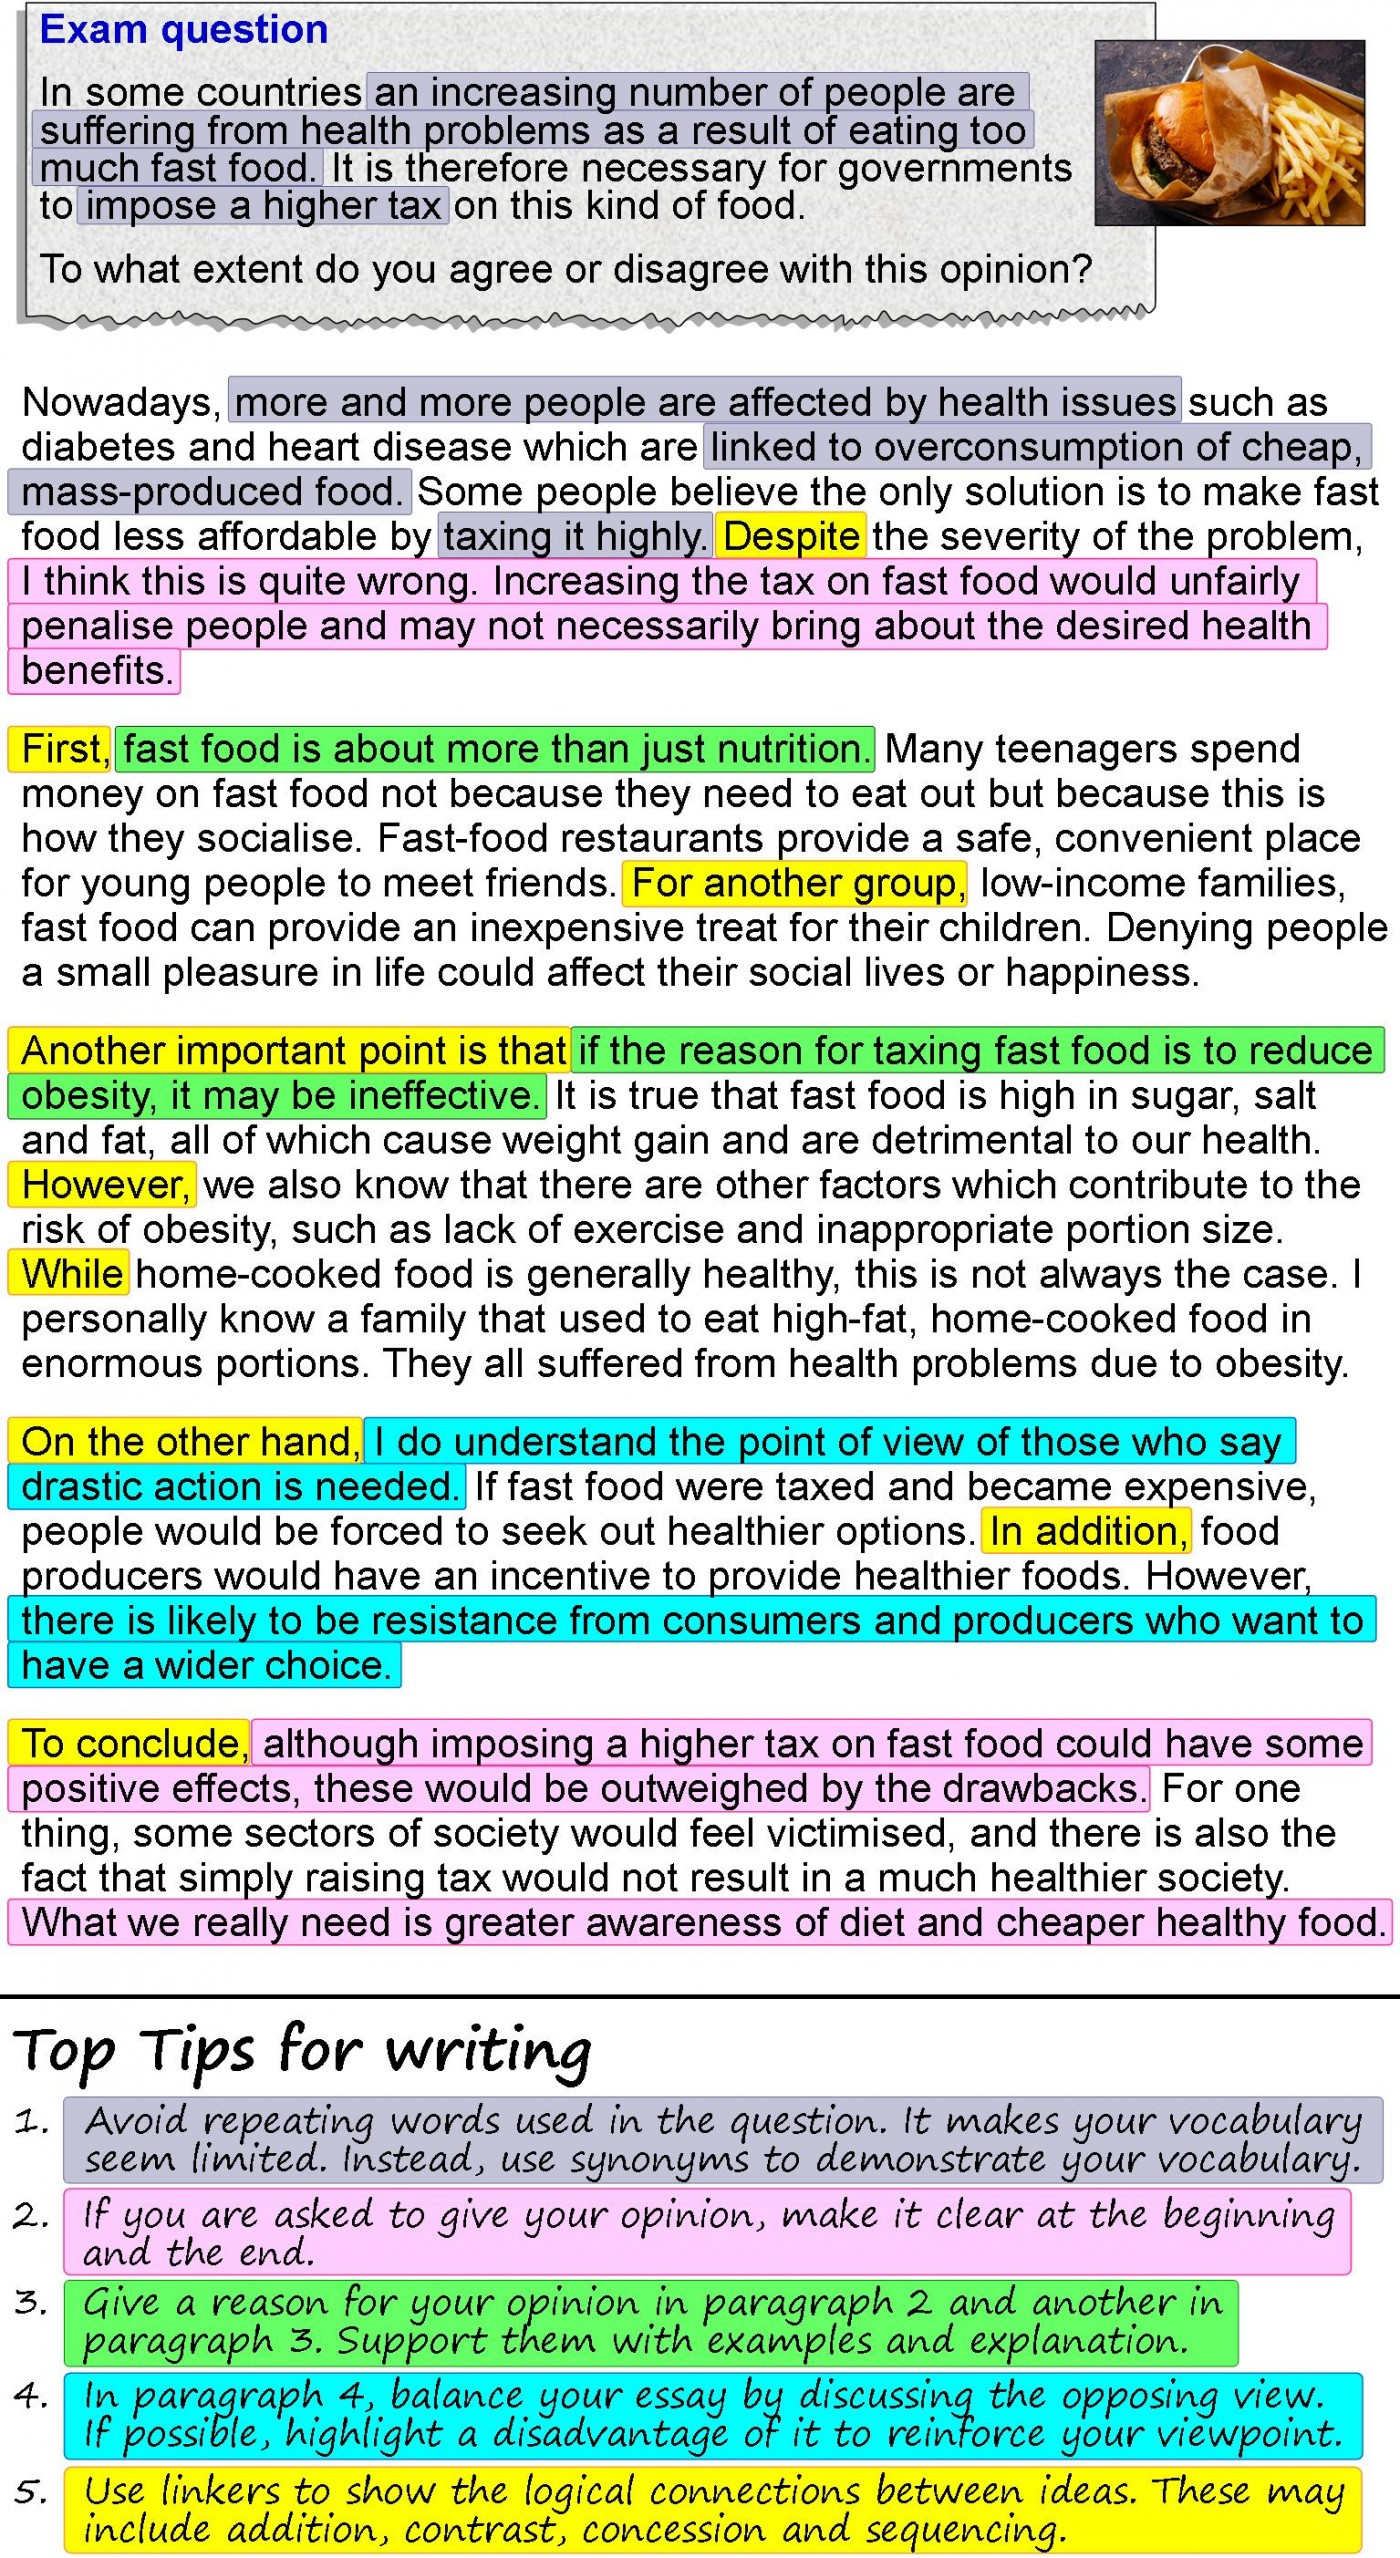 001 An Opinion Essay About Fast 4 Example Stunning Food Nation Outline Titles Introduction 1400